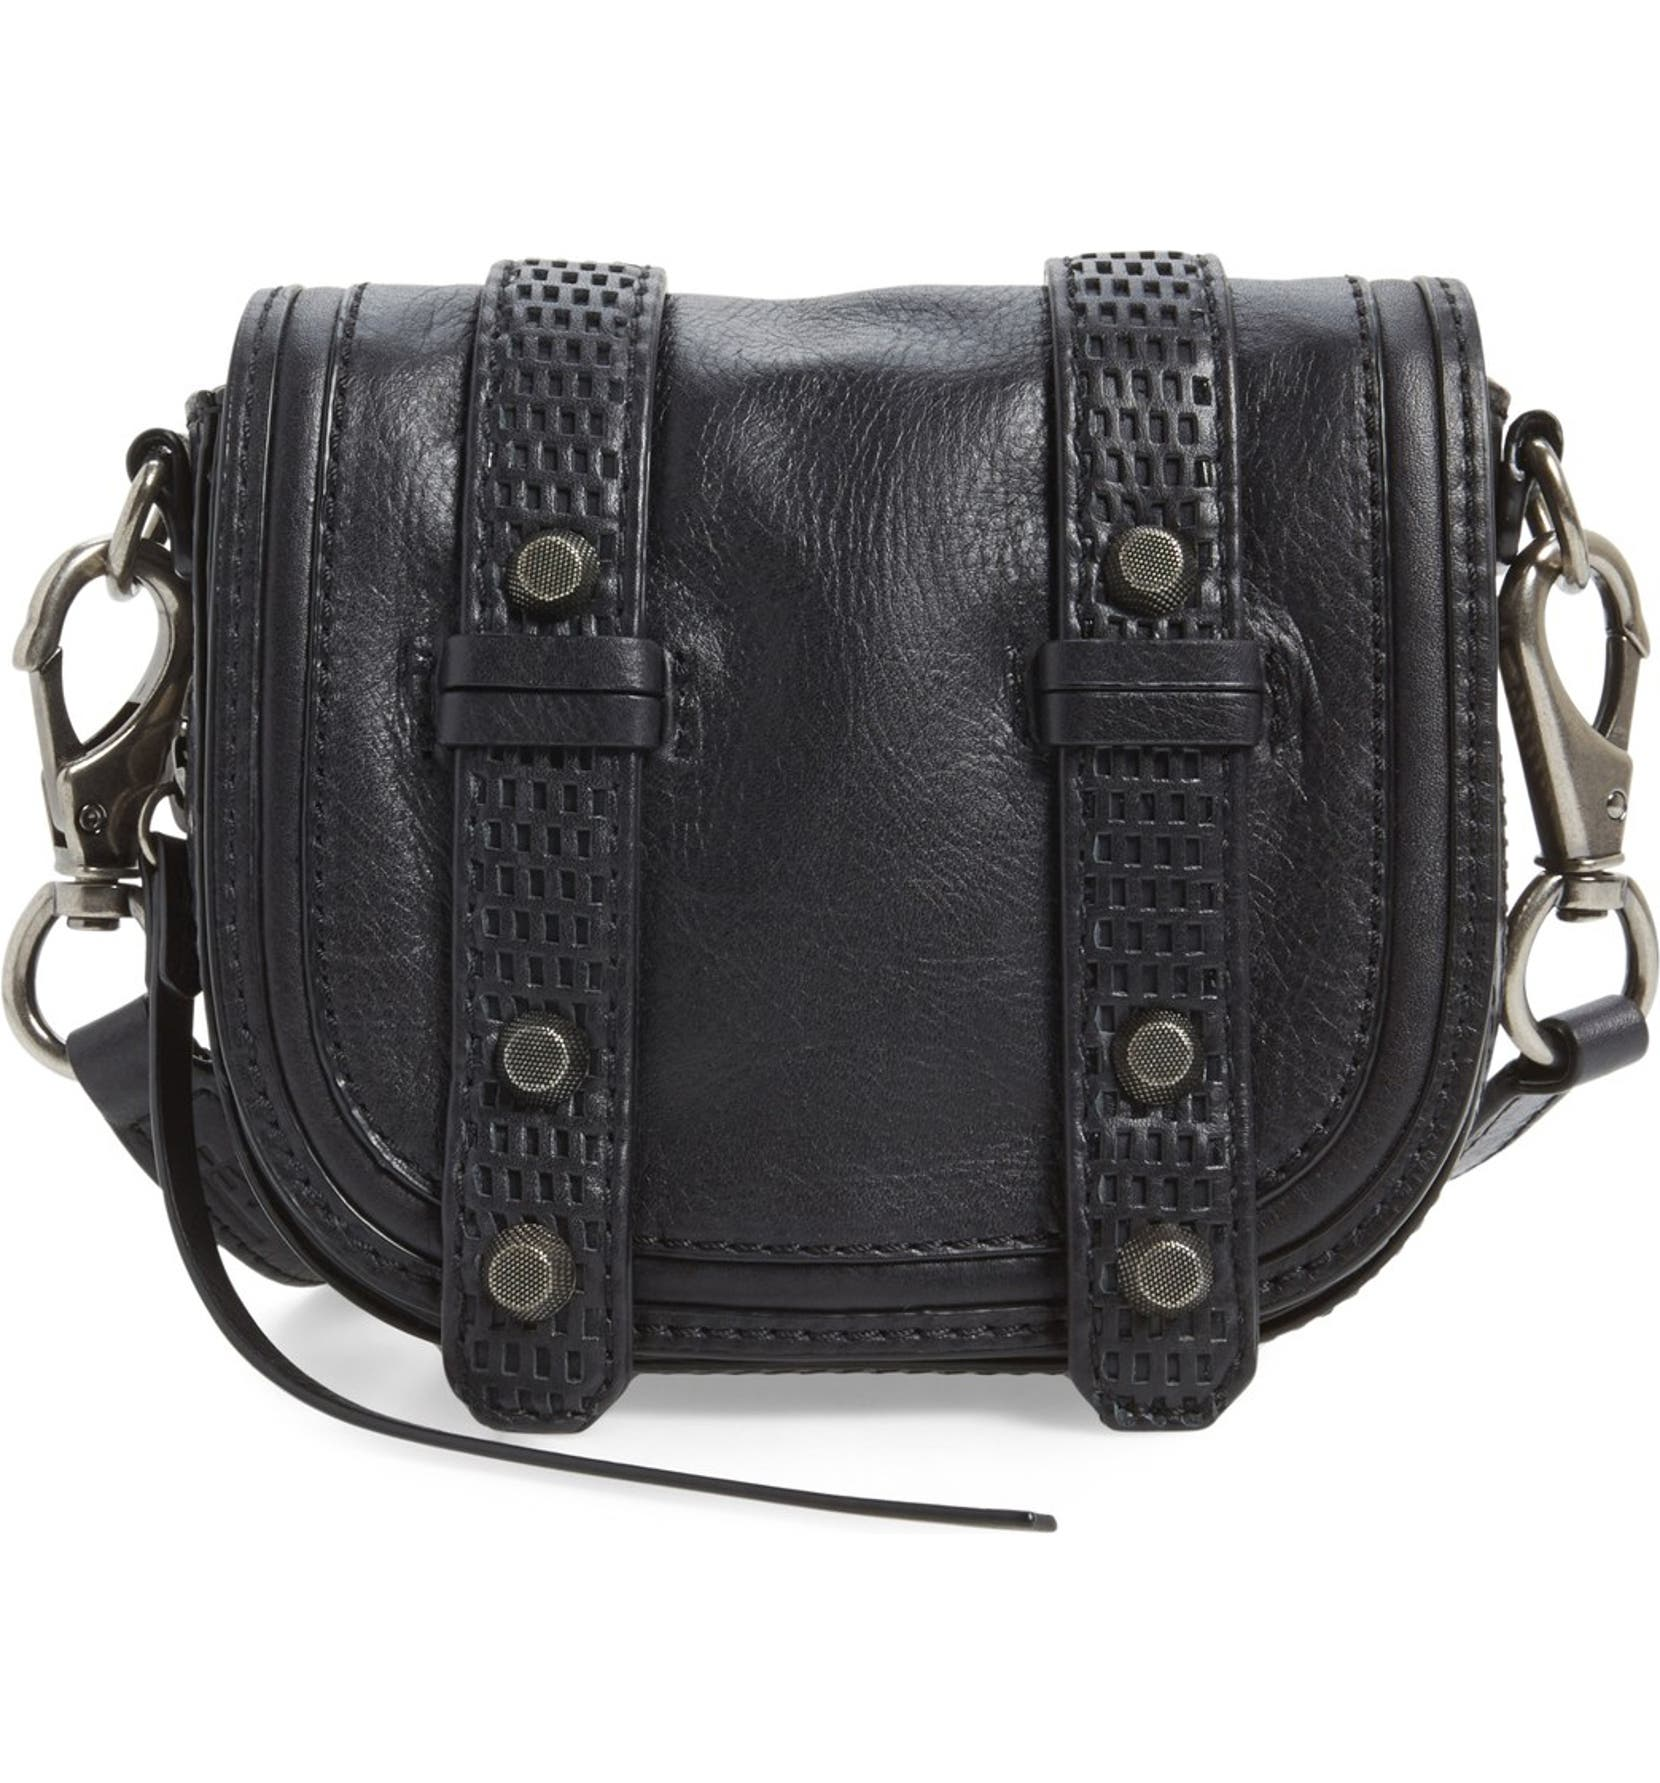 627743a50d She + Lo 'Unchartered' Crossbody Bag | Nordstrom